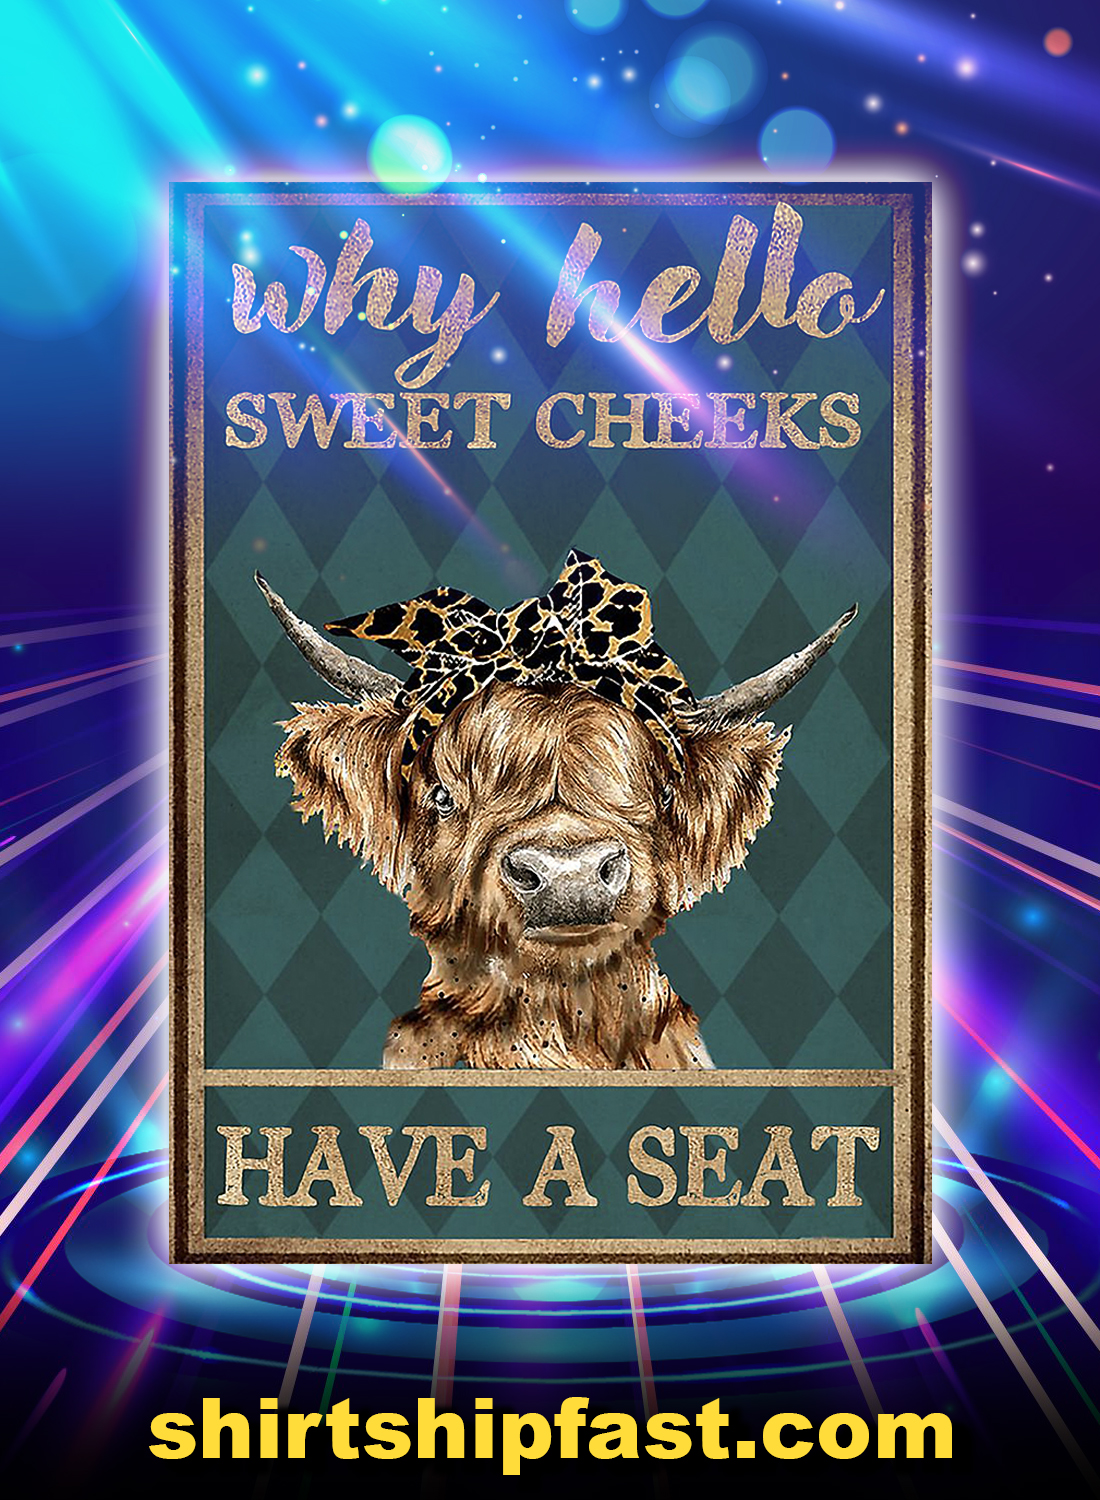 Cow highland cattle why hello sweet cheeks have a seat poster - A4